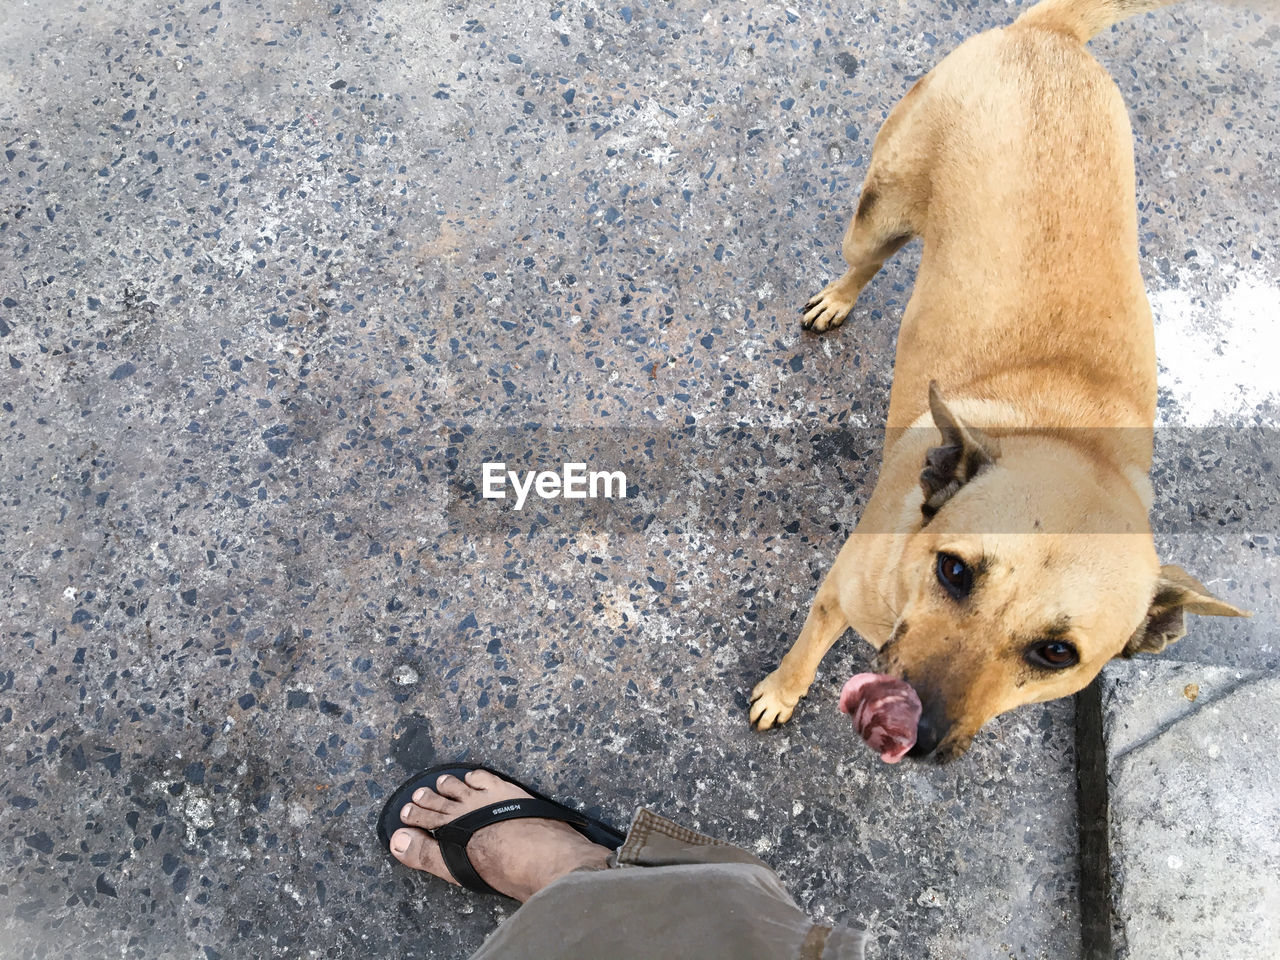 Portrait of dog standing by leg on footpath